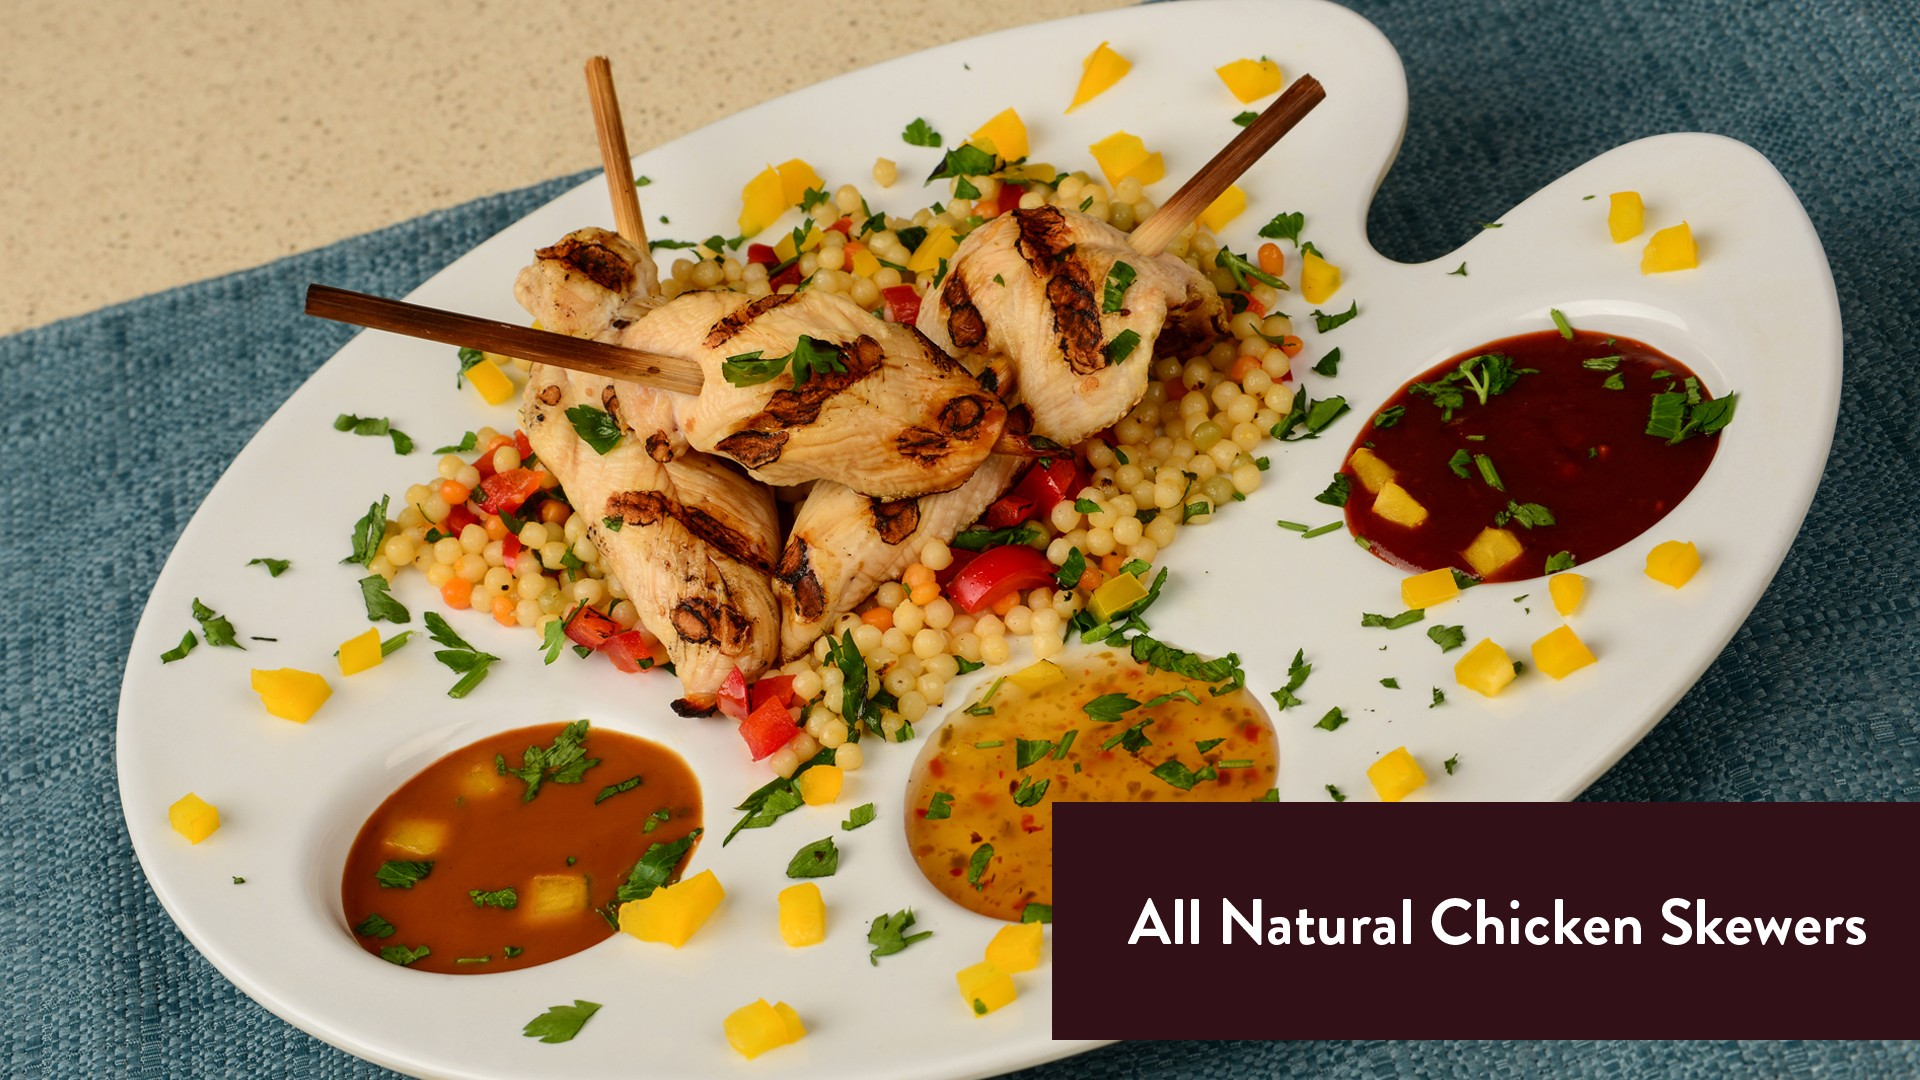 All Natural Chicken Skewers from Hershey's Chocolate World